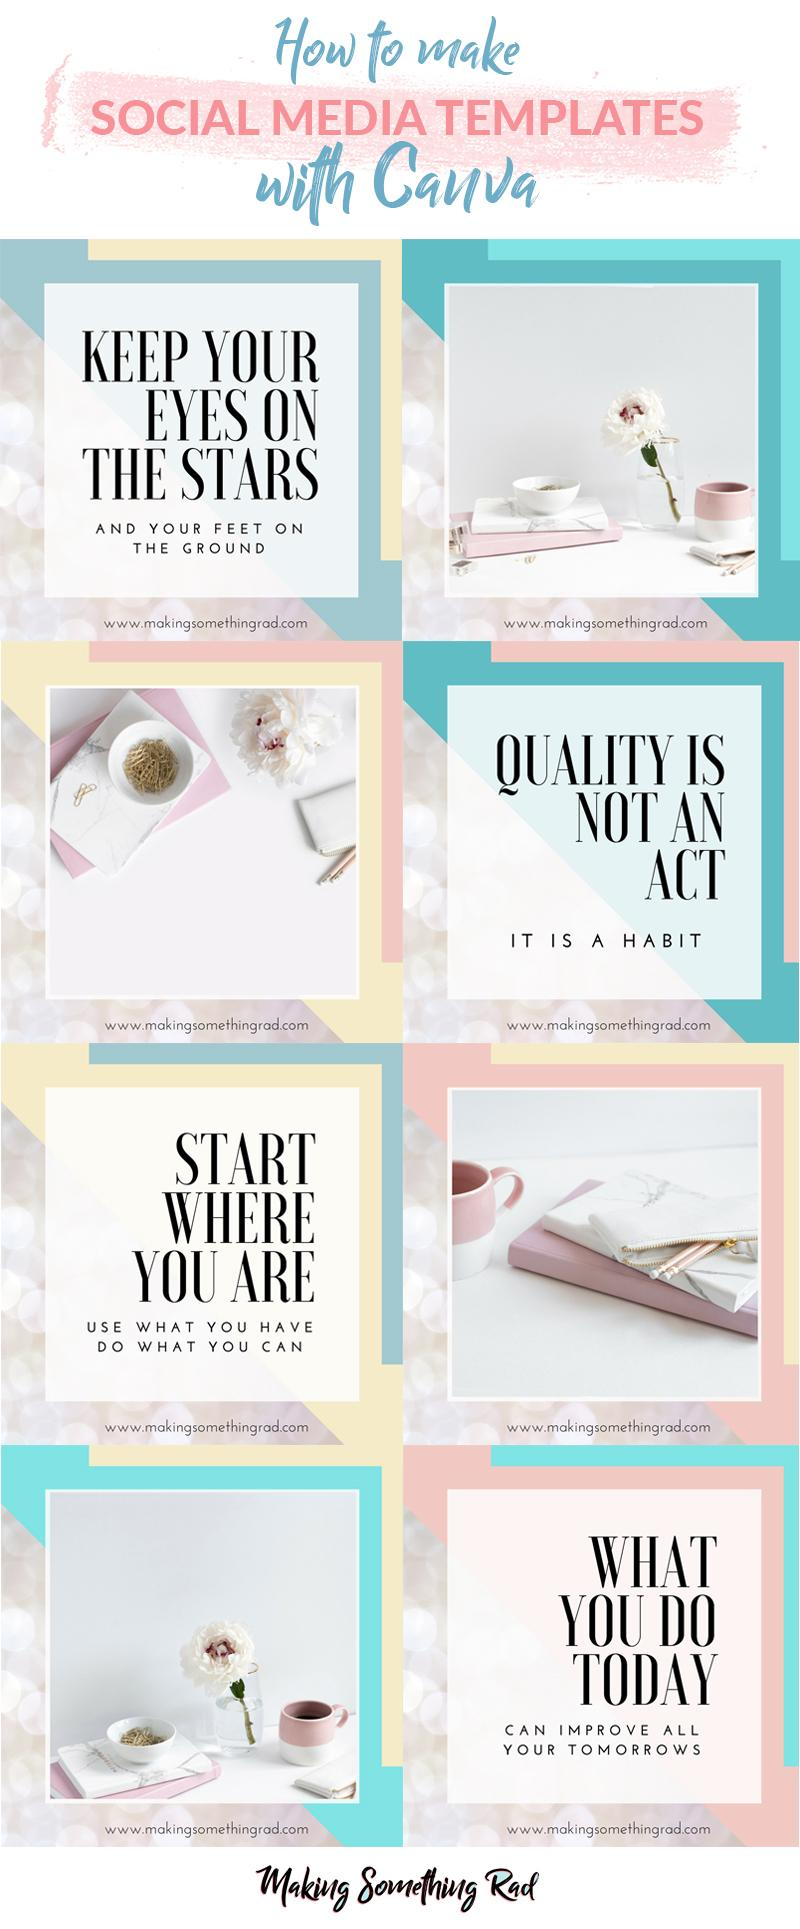 how to make social media post templates in canva free class